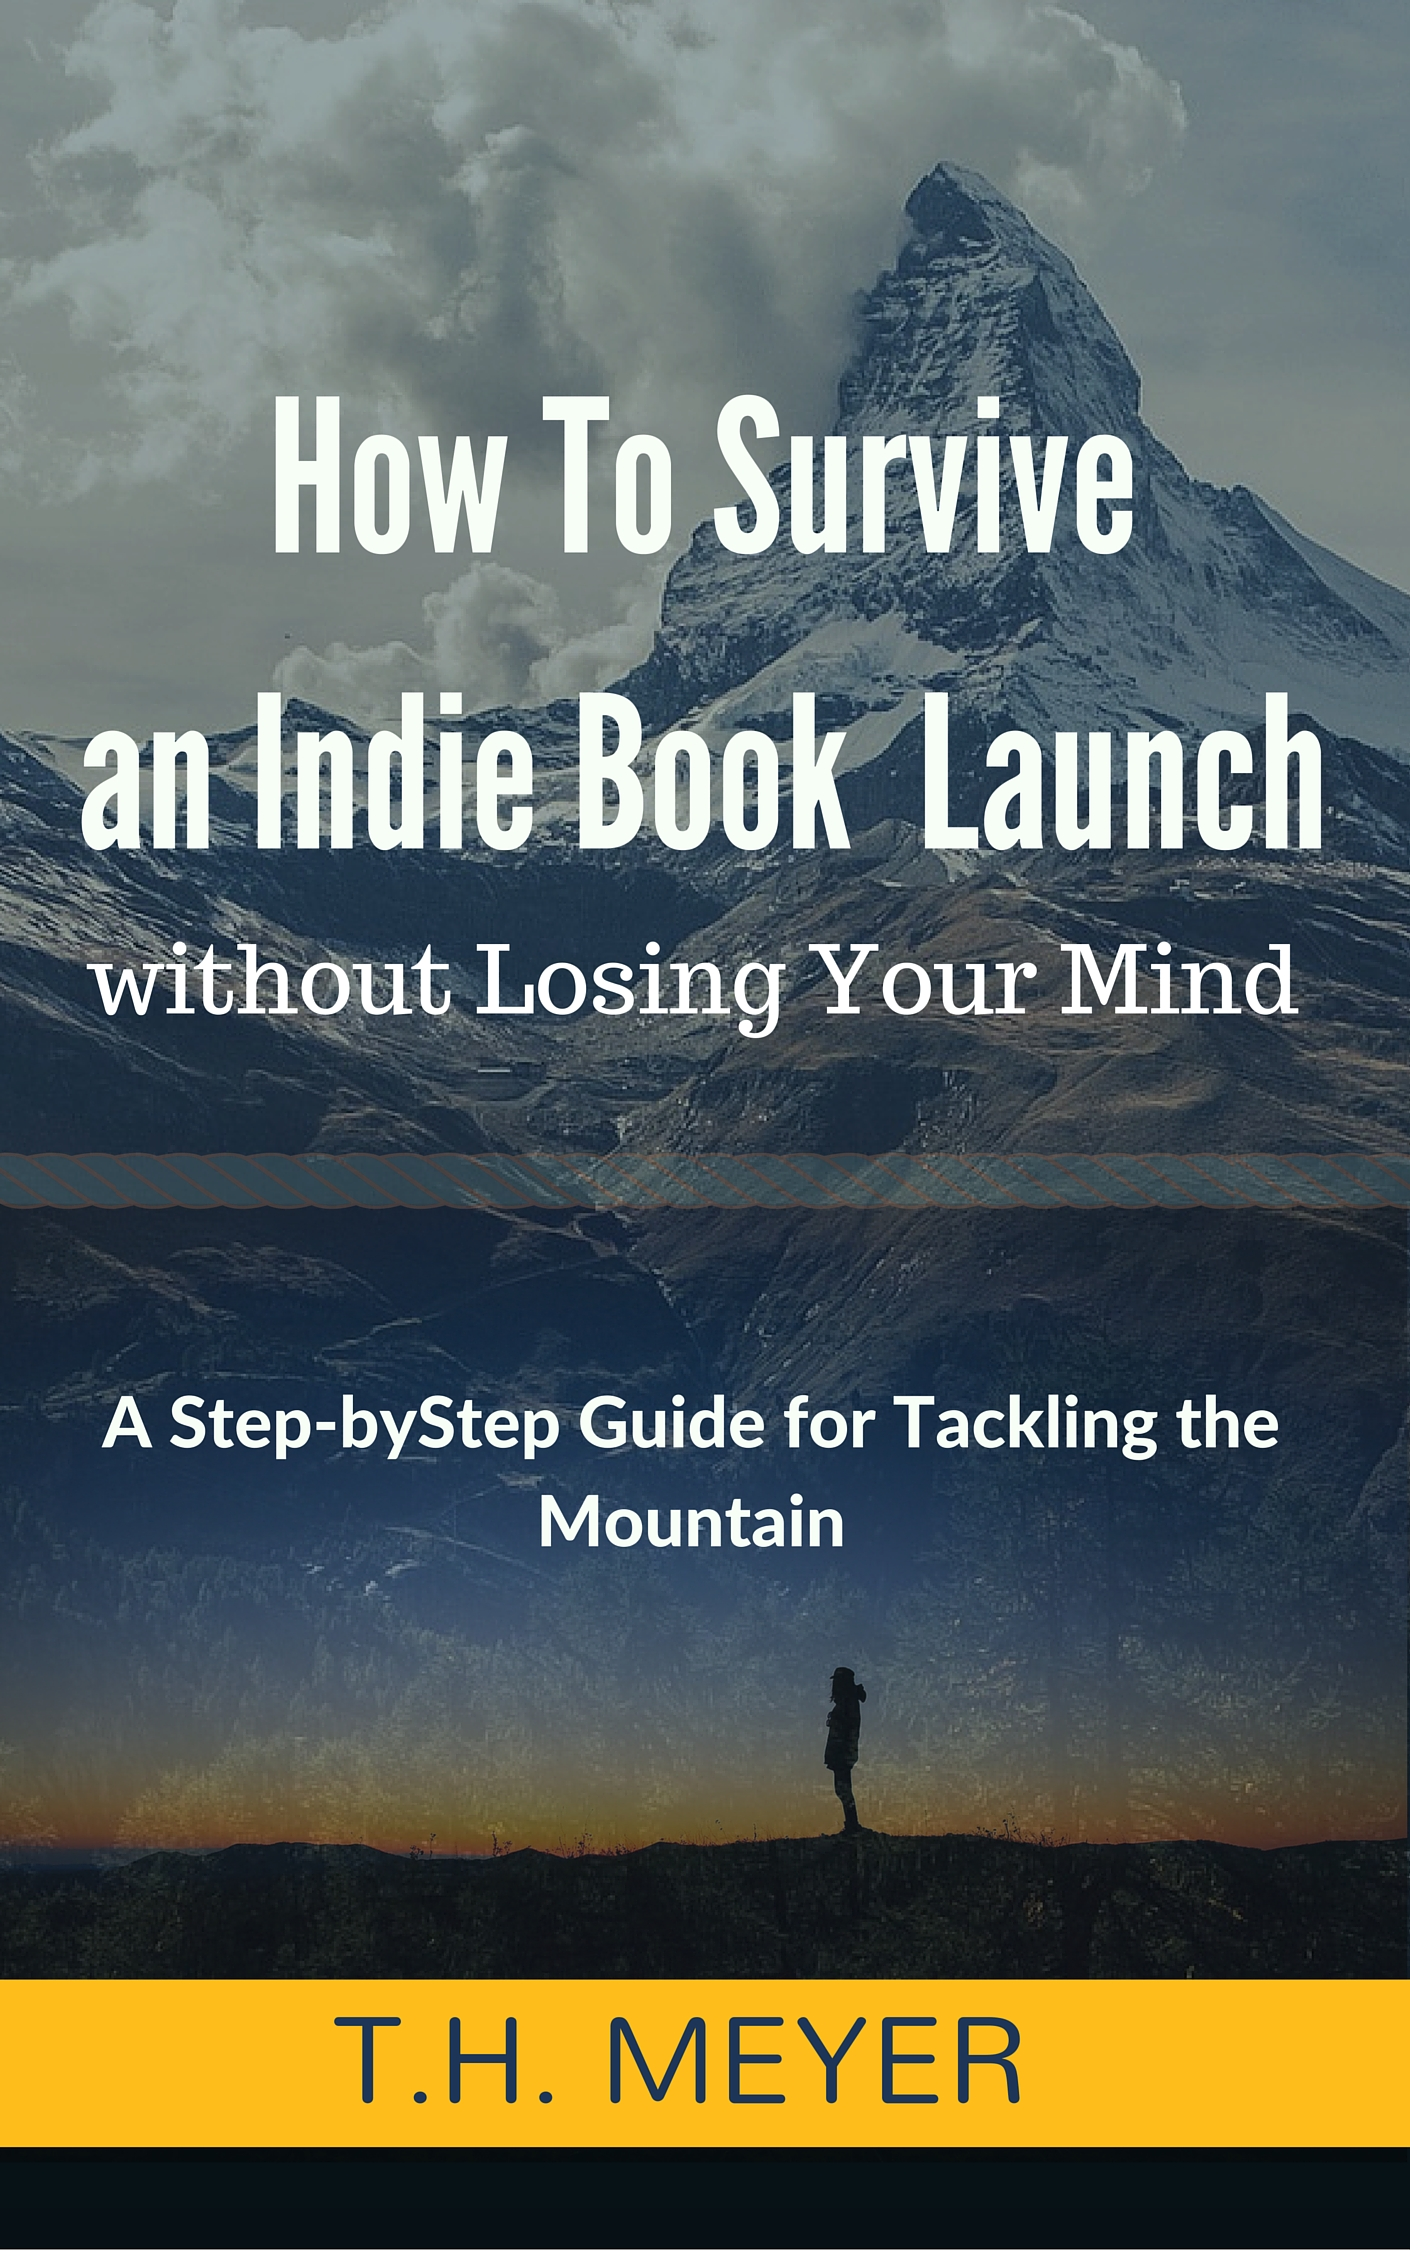 How to Survive an Indie Book Launch, by T.H. Meyer